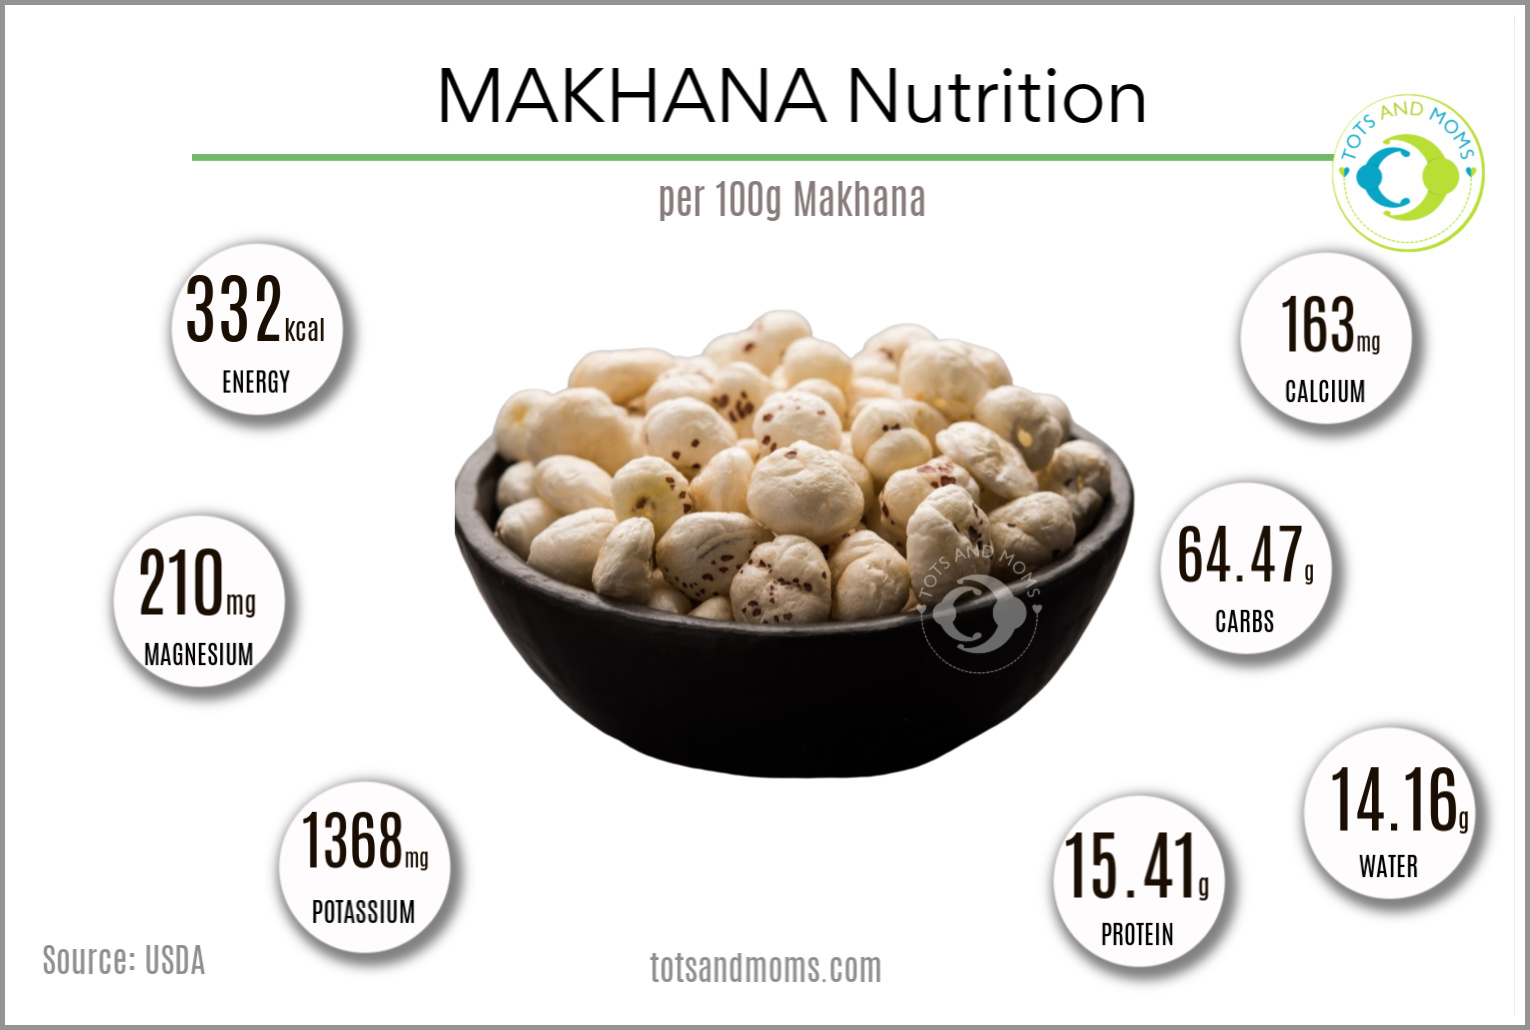 Makhana Based Recipes for Babies Toddlers and Kids Makhana For Babies Makahna for Toddlers Makhana for Kids Benefits of Makhana to Babies Kids and Toddlers Can I give my baby Makhana When Can I give my baby Makhana